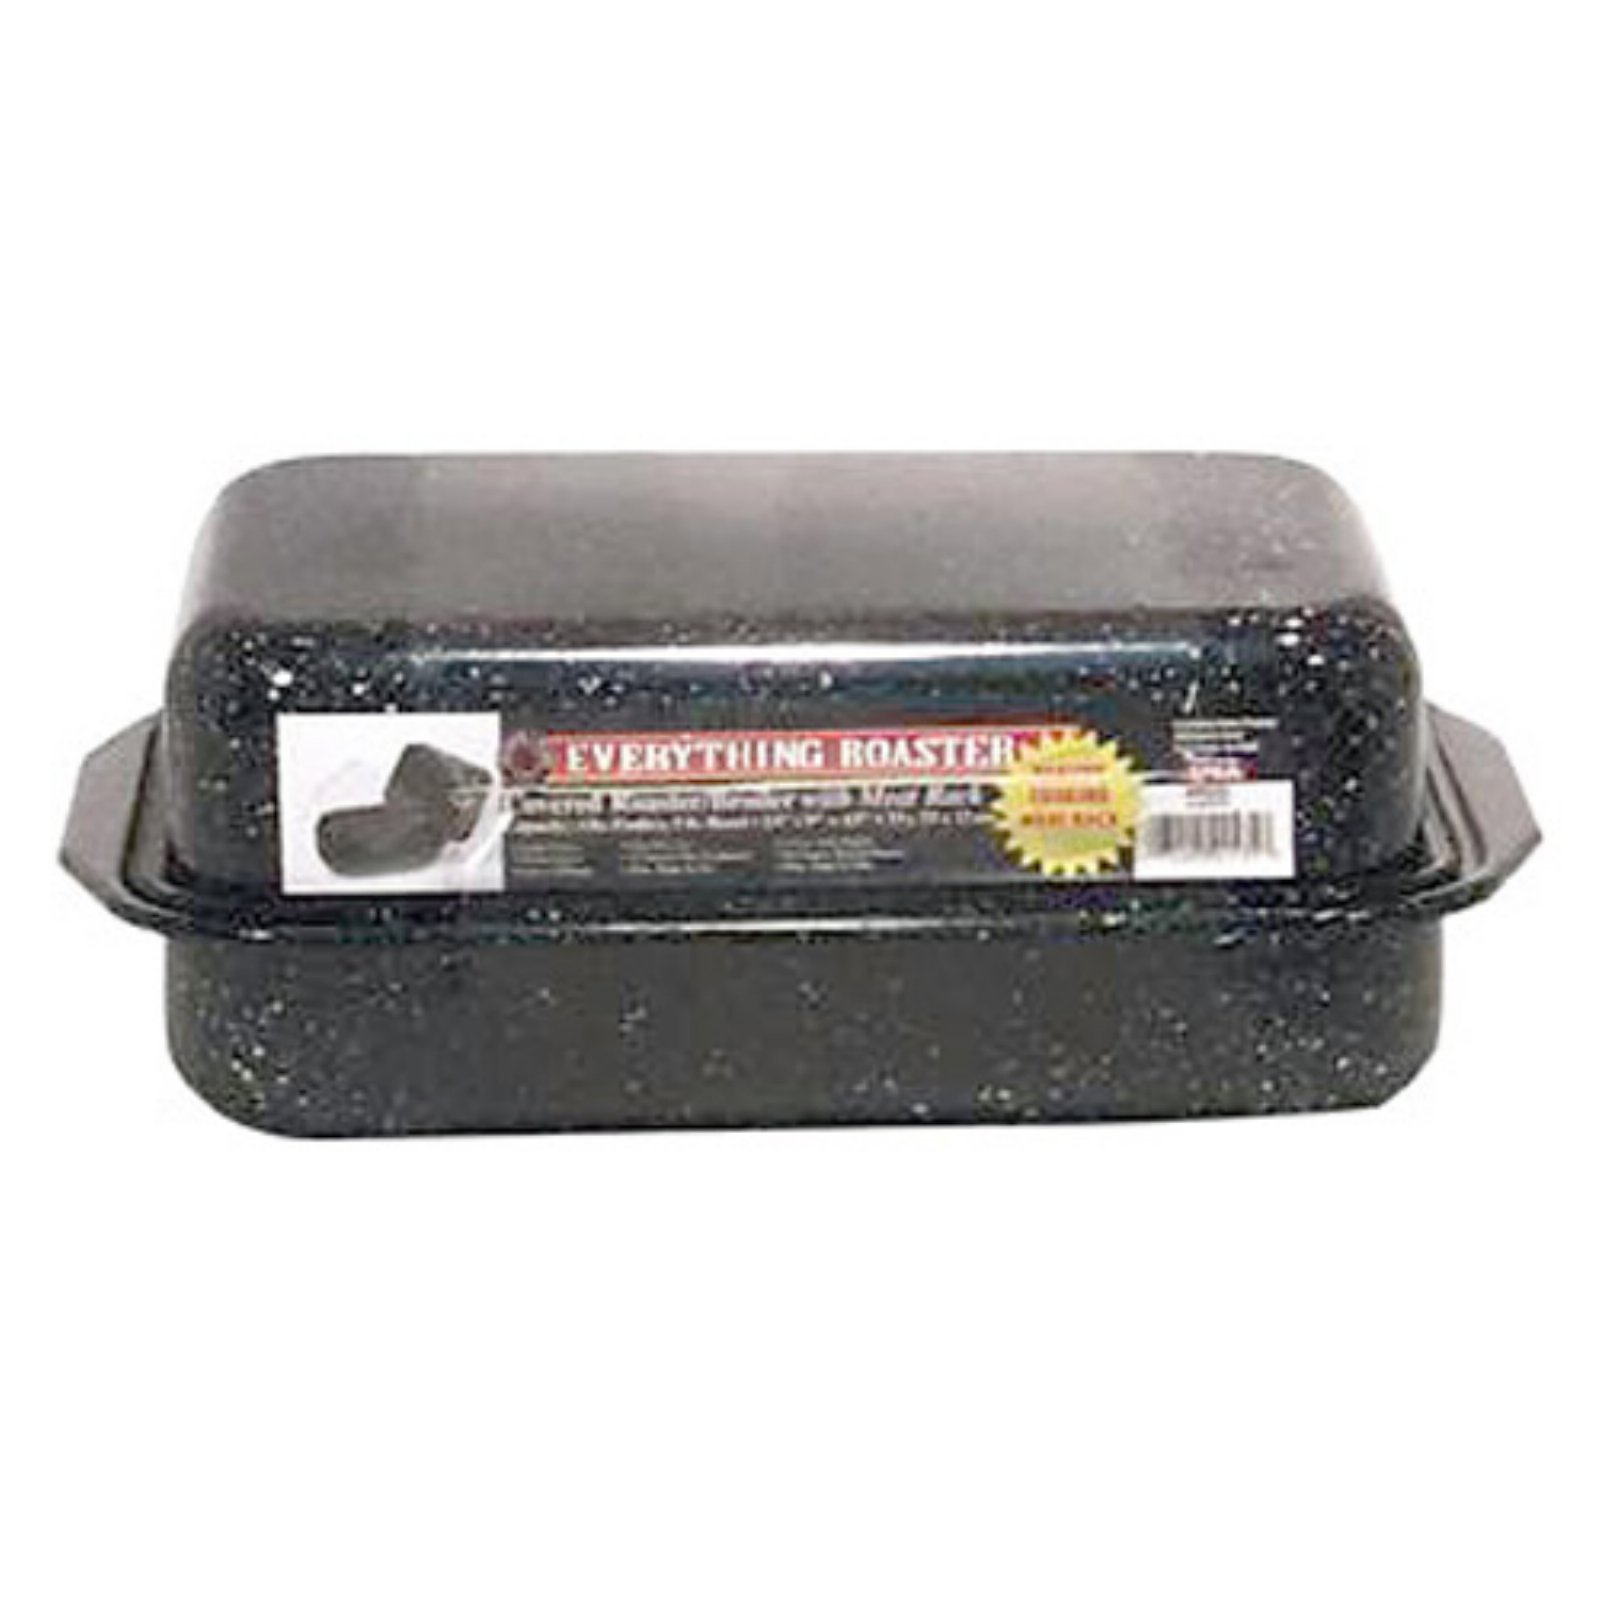 Granite Ware Everything Roaster 3 Piece Set